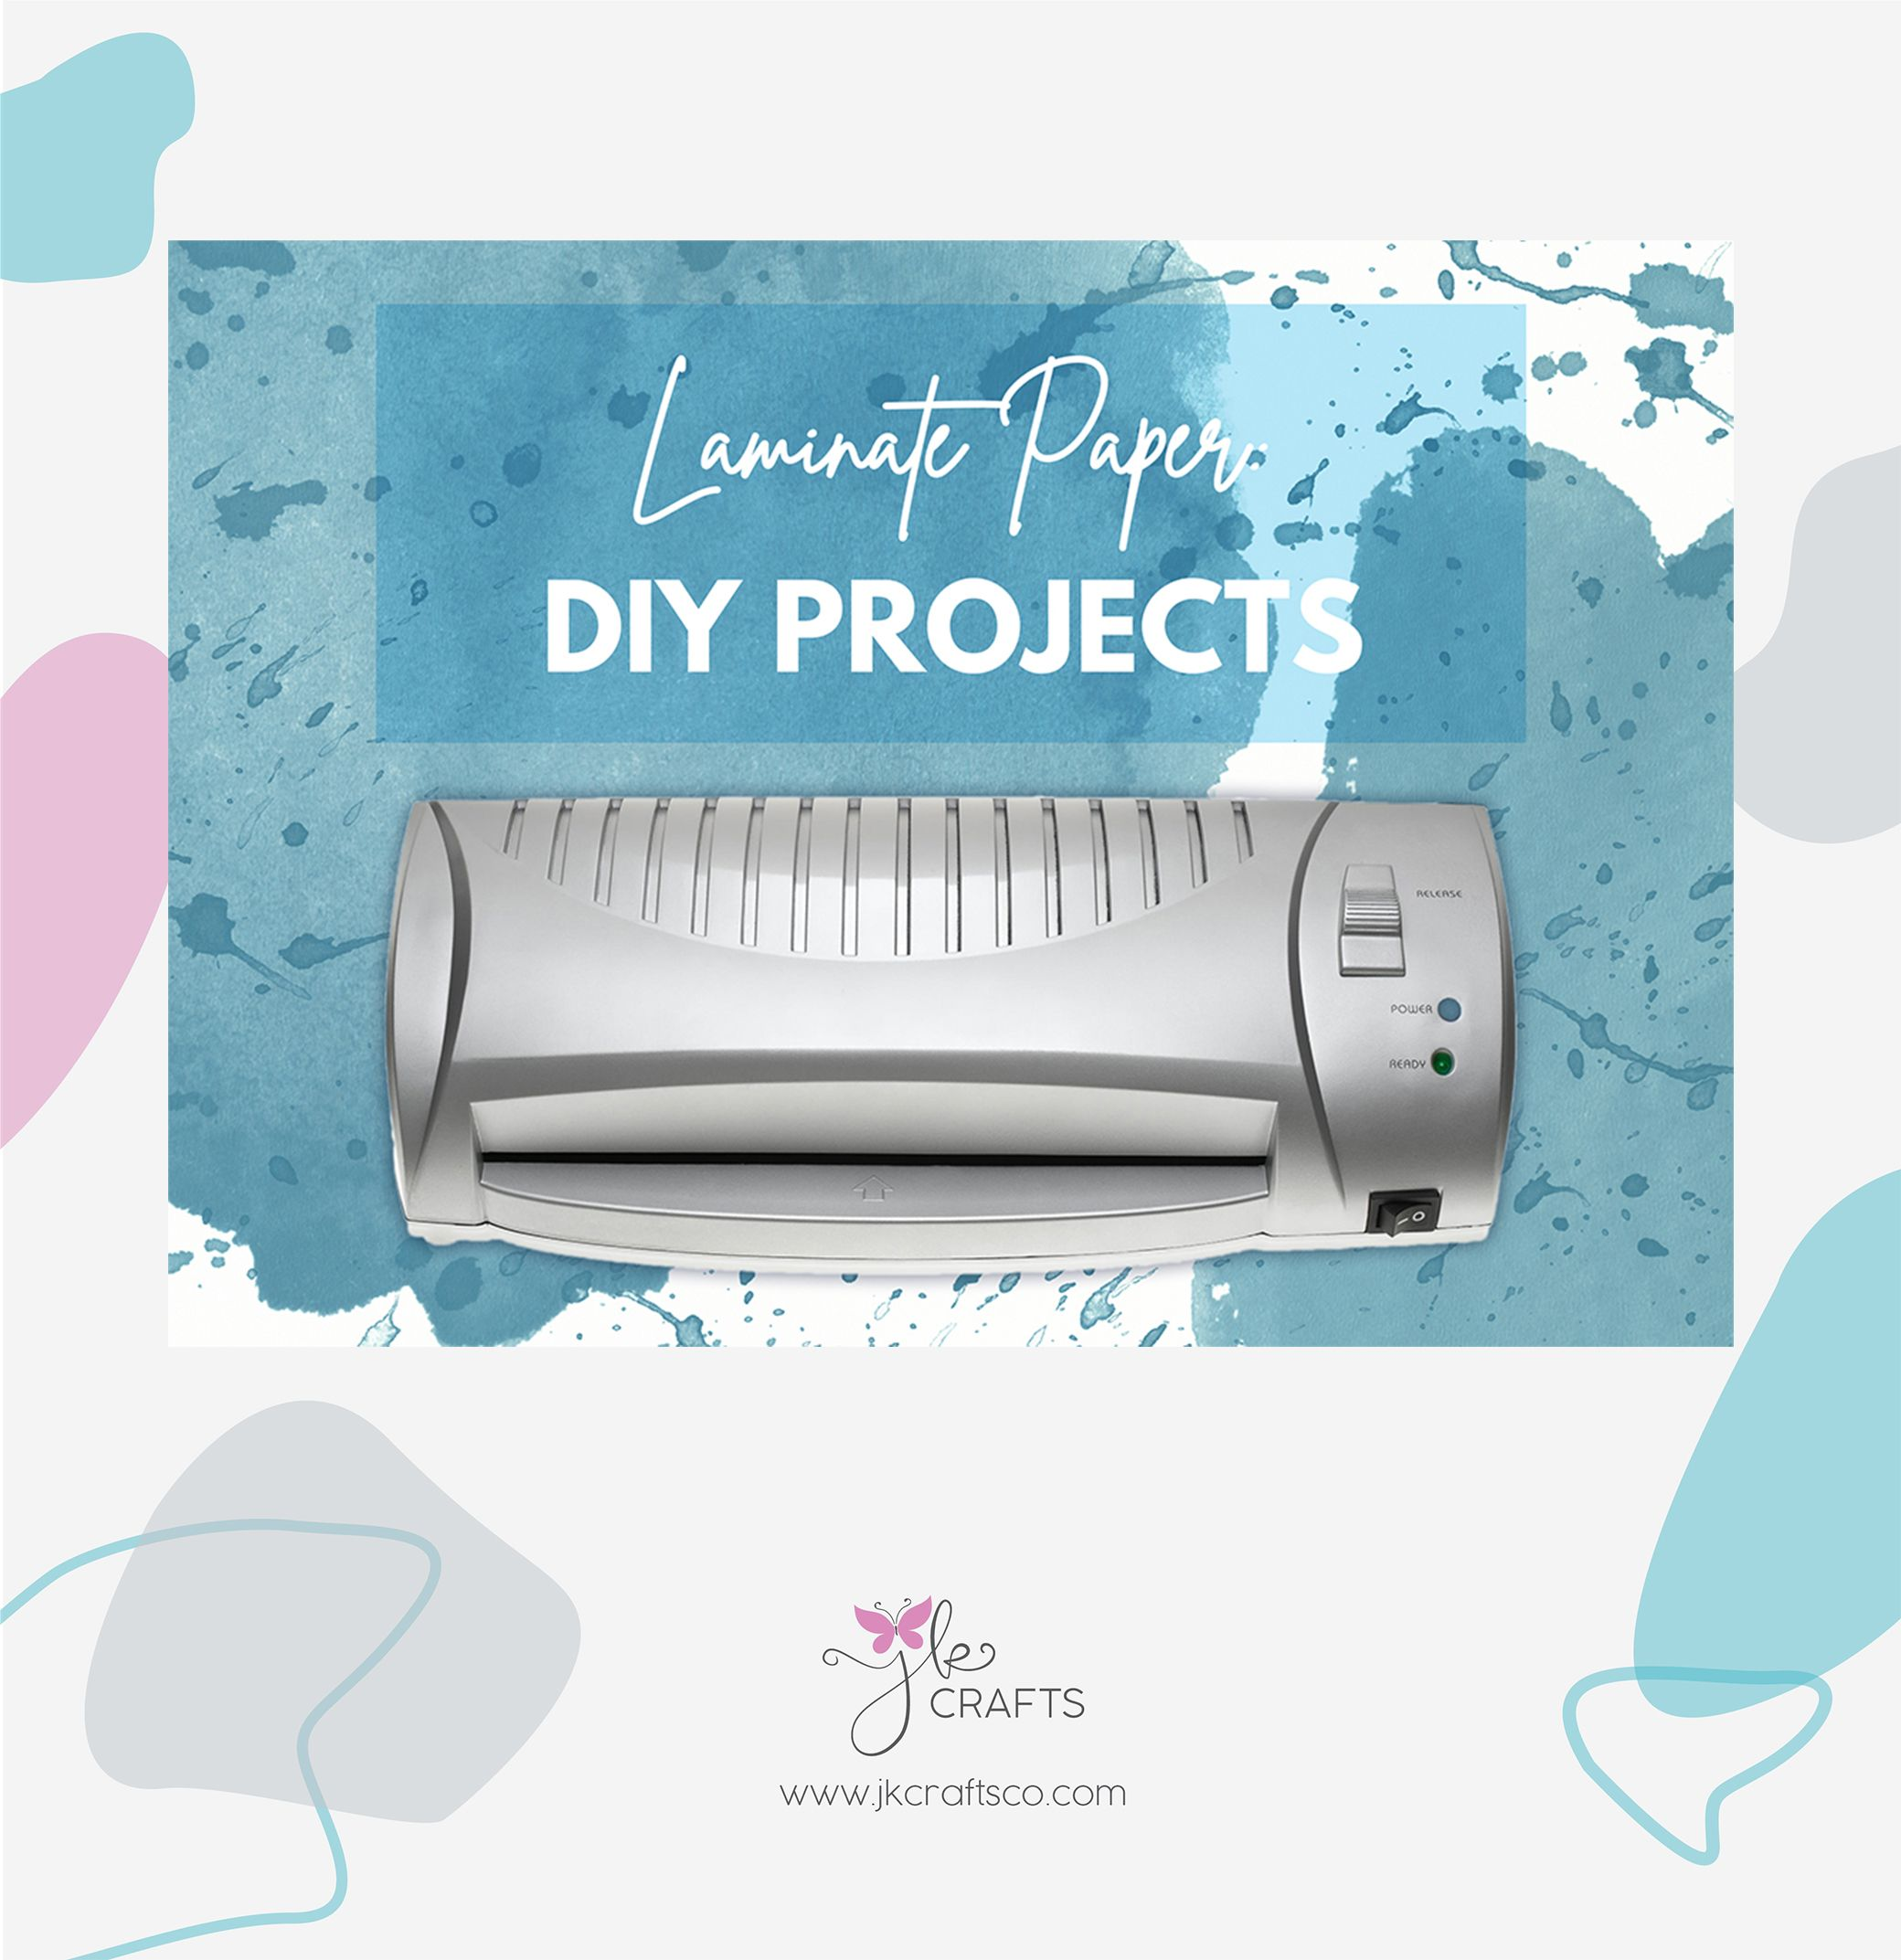 Laminate Paper Diy Projects In 2020 Diy Paper Projects Diy Projects